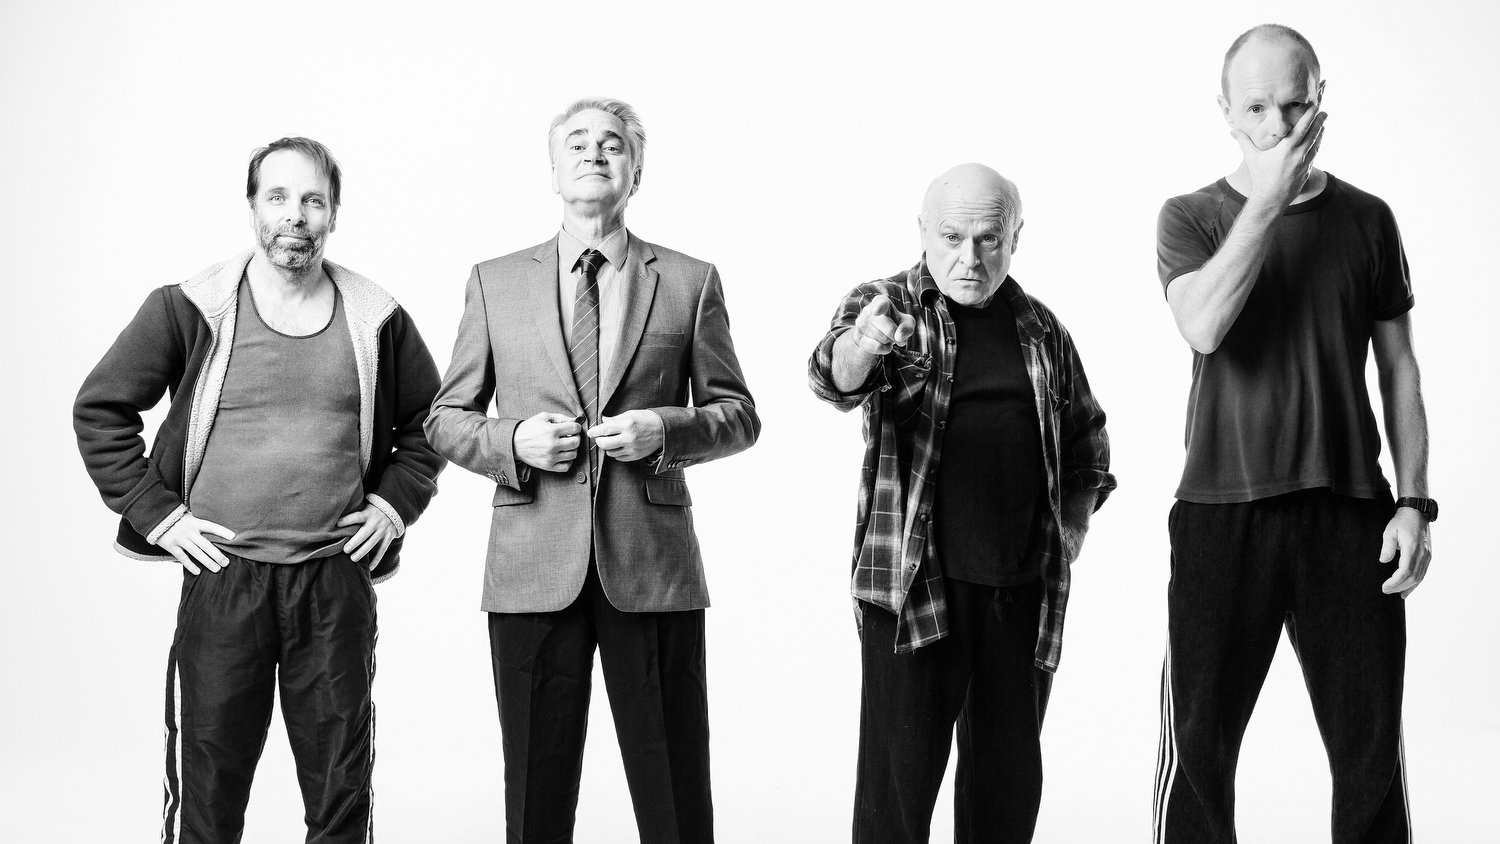 The cast of The Dapto Chaser - Jamie Oxenbould, Noel Hodda, Danny Adcock and Richard Sydenham.